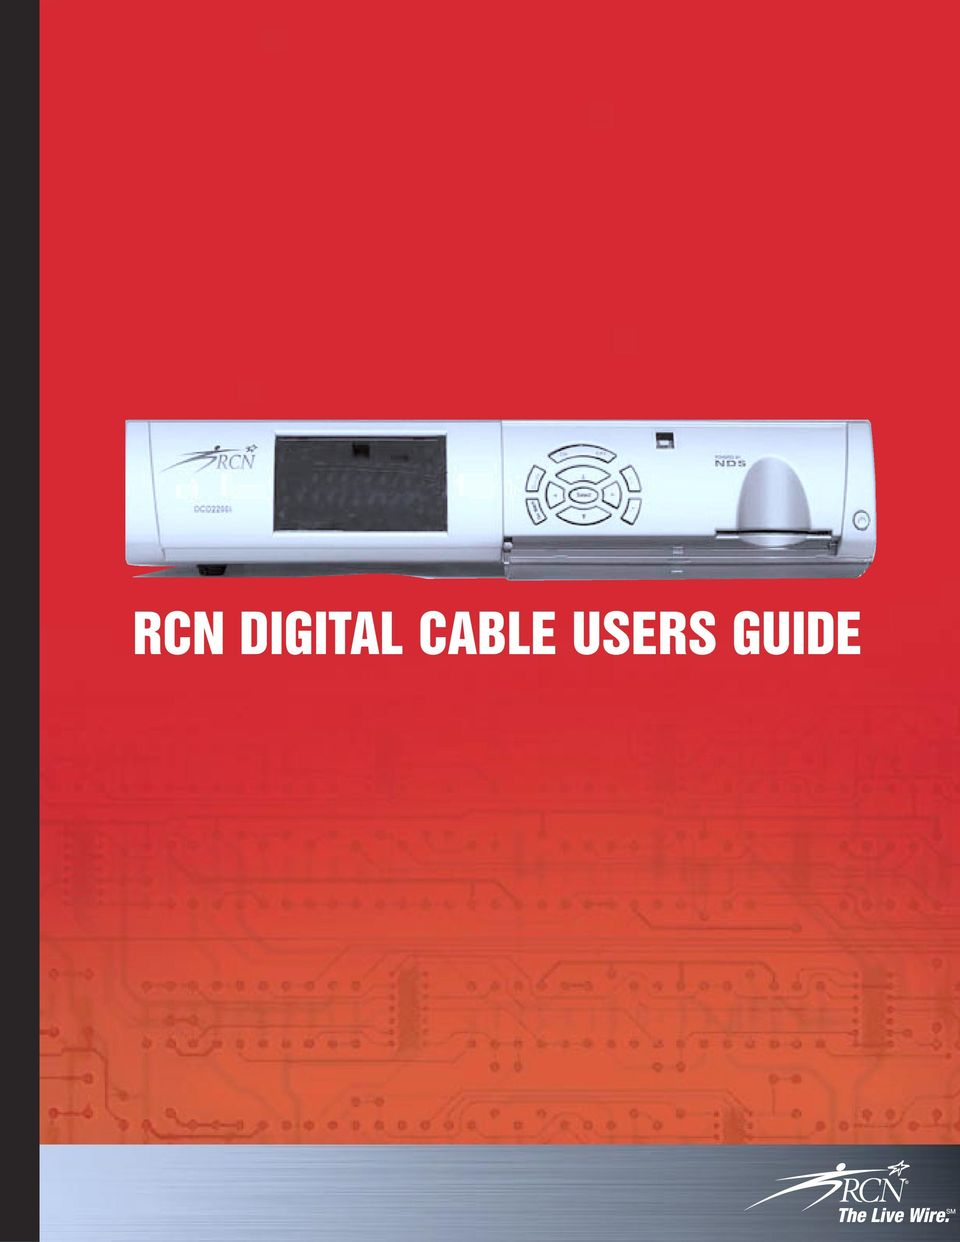 RCN DIGITAL CABLE USERS GUIDE - PDF